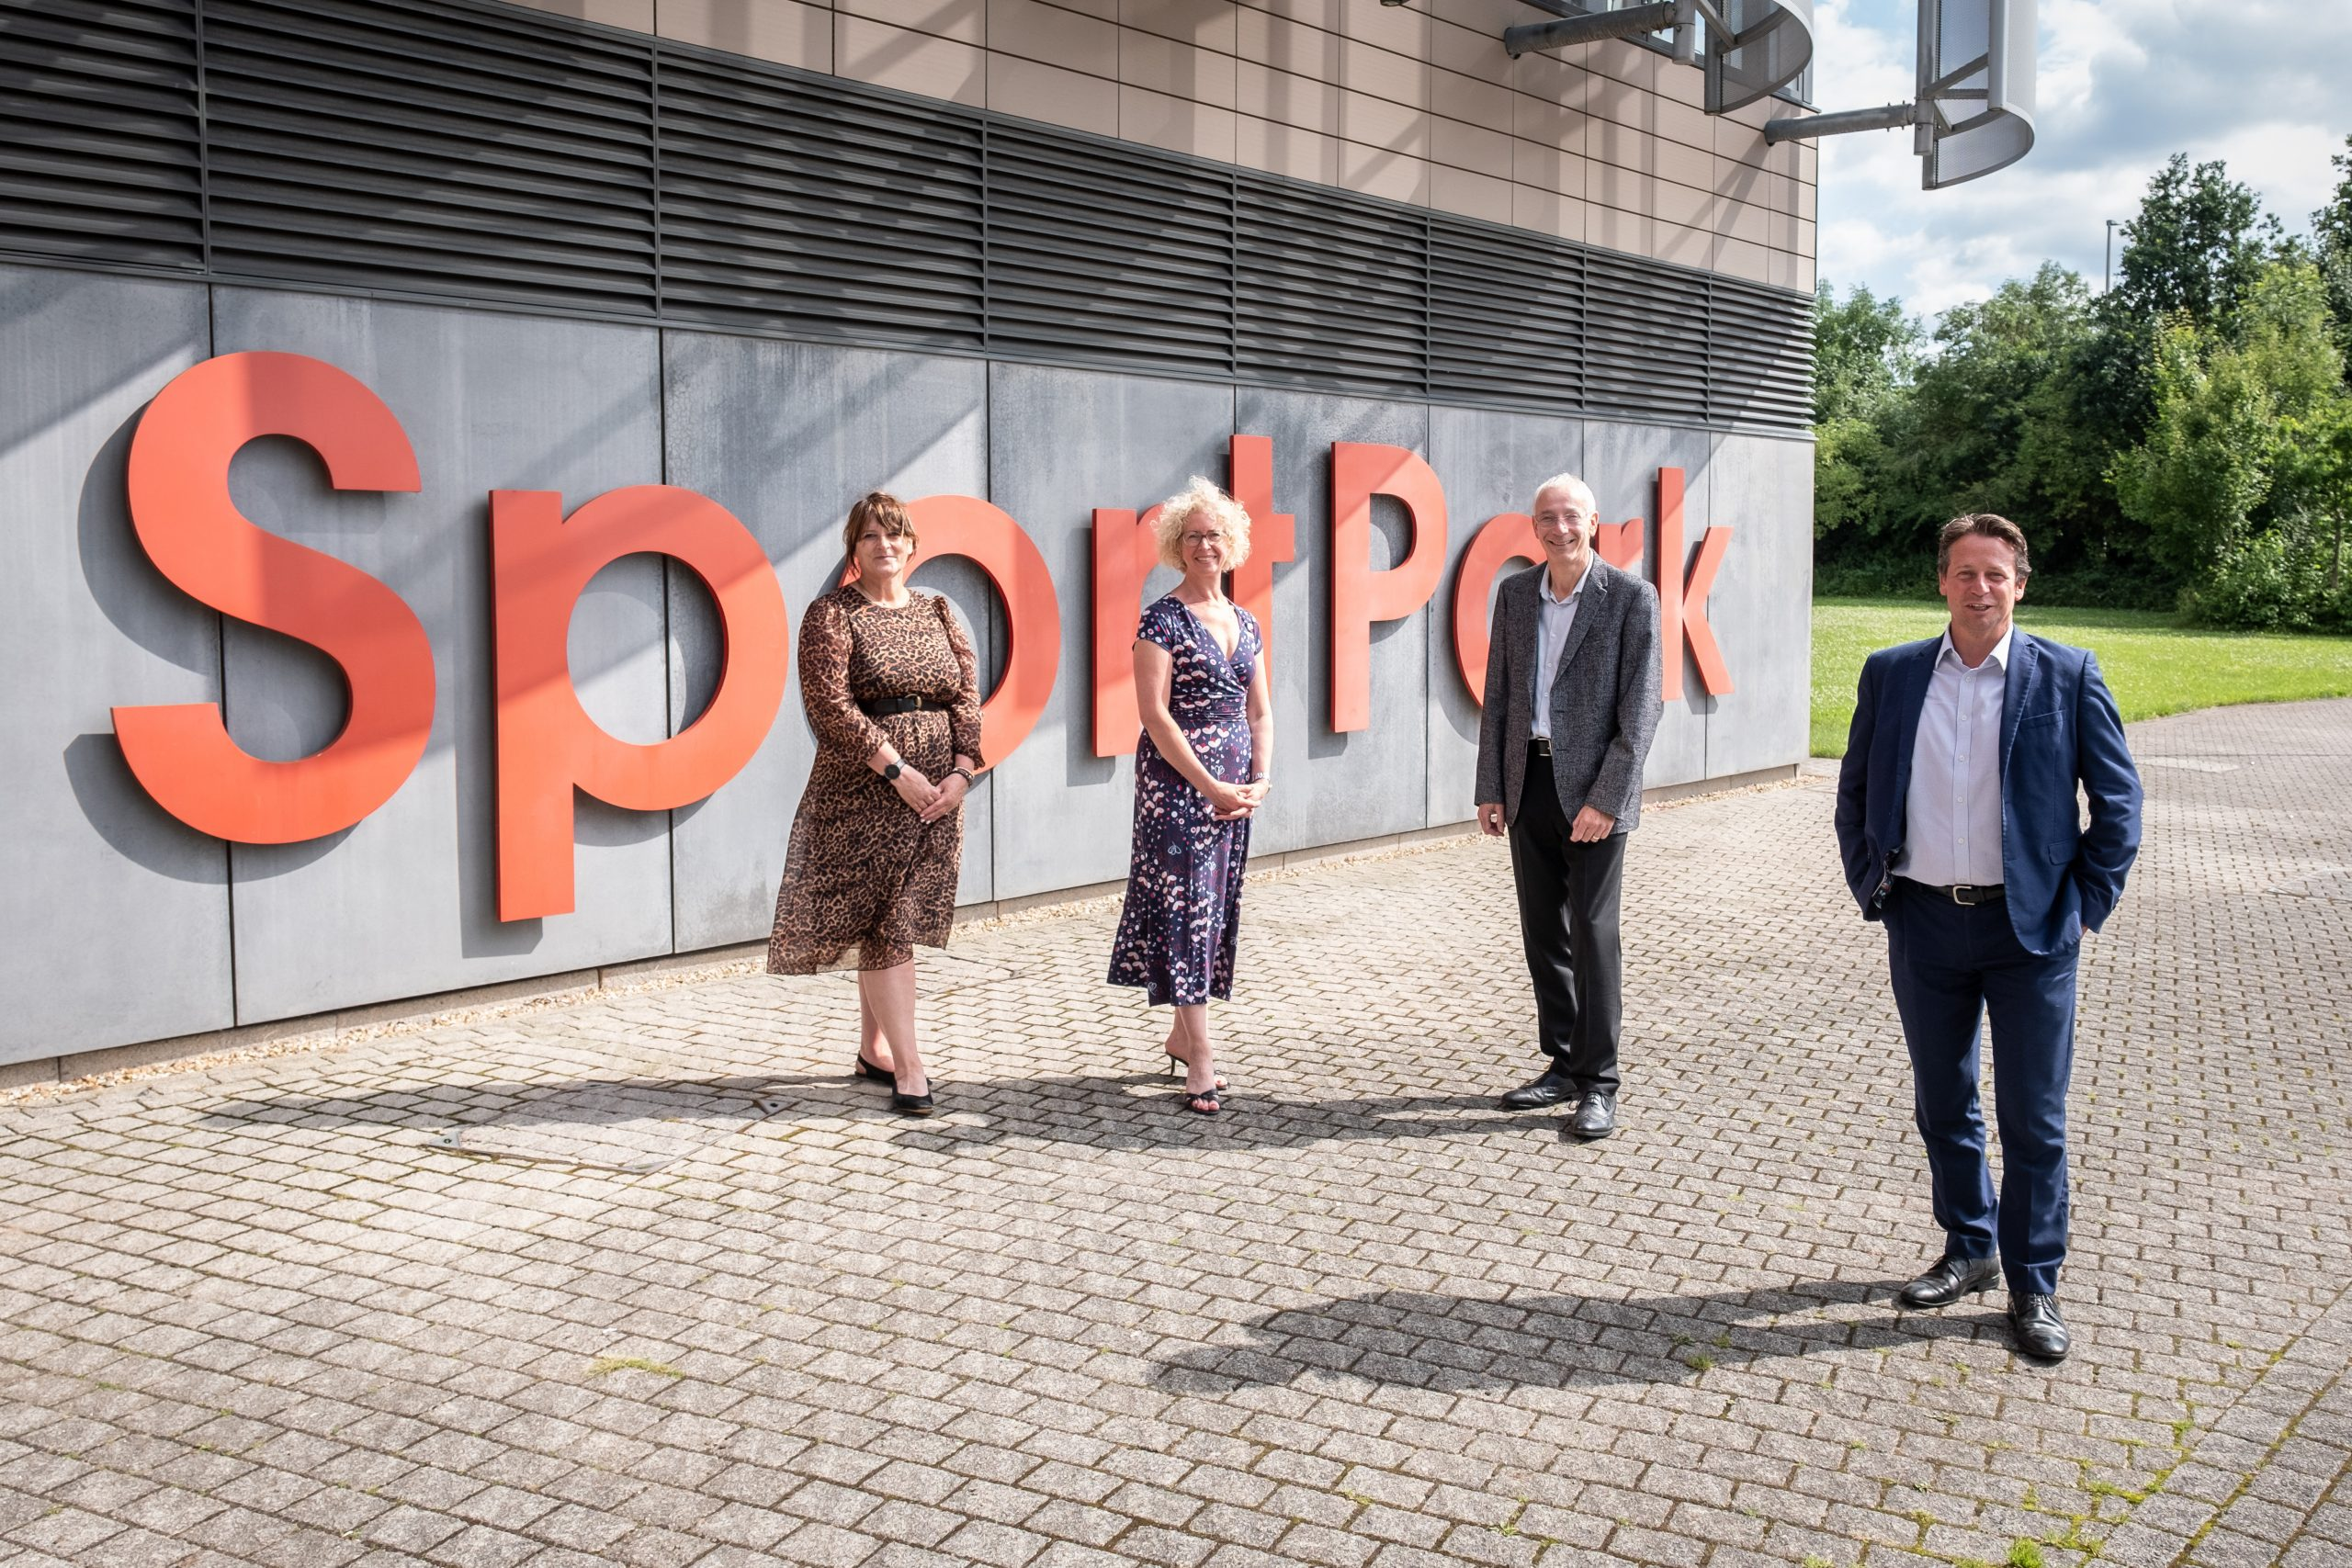 Sports Minister visits UKAD's new HQ at Loughborough University: a Midlands powerhouse for sport